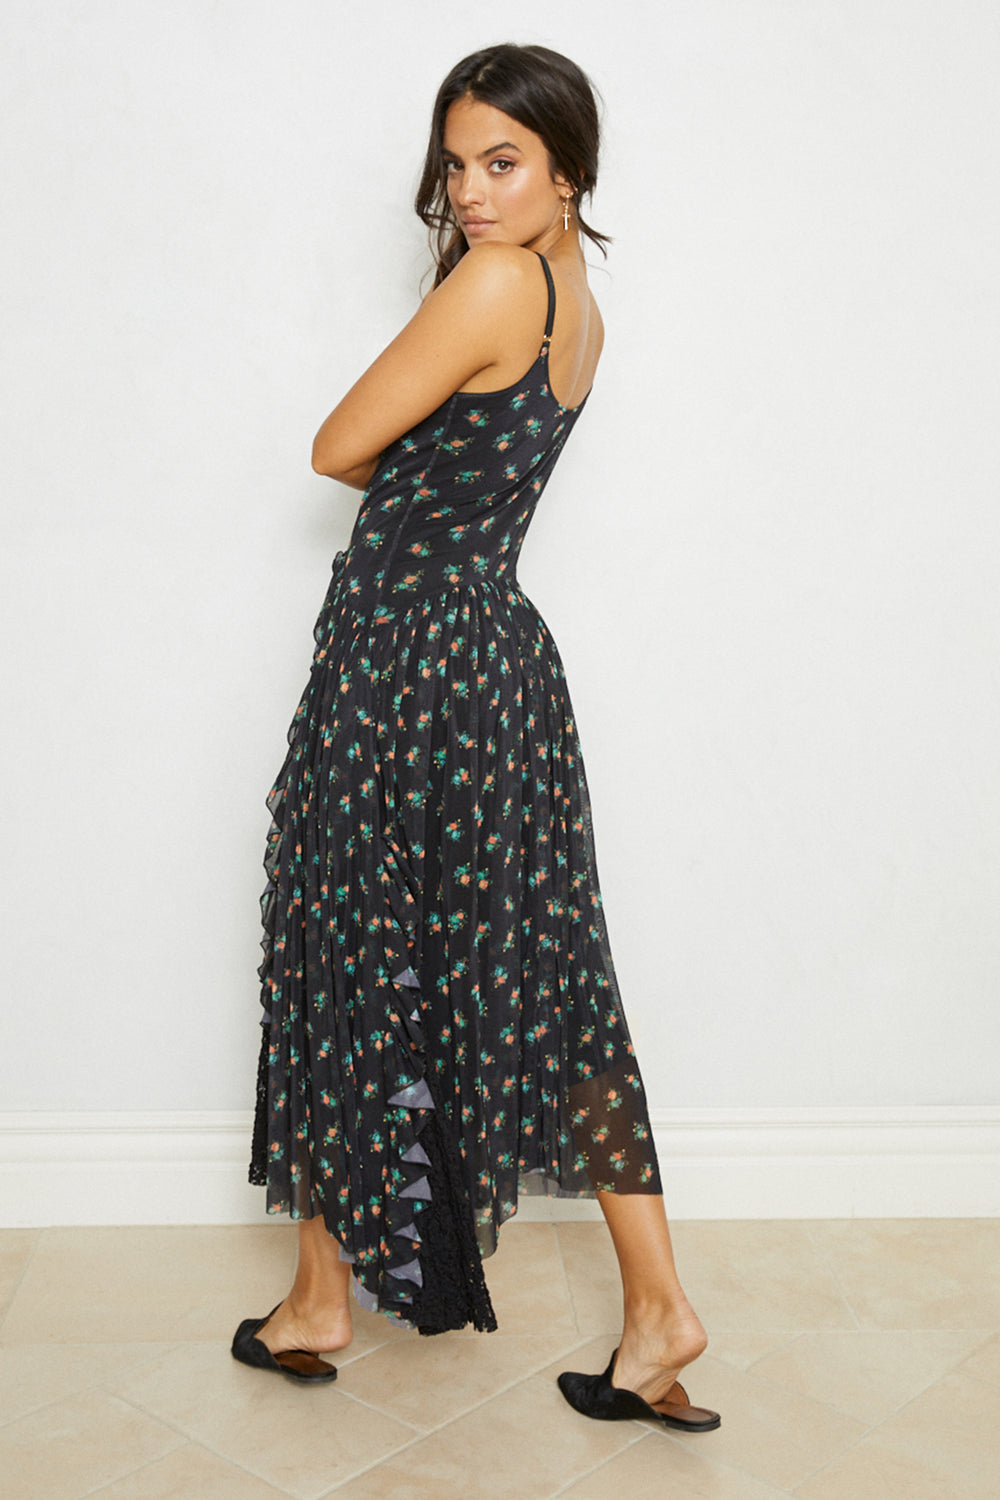 Black floral print adjustable straps vintage inspired drop waist maxi dress with lace ruffles eco-friendly | S